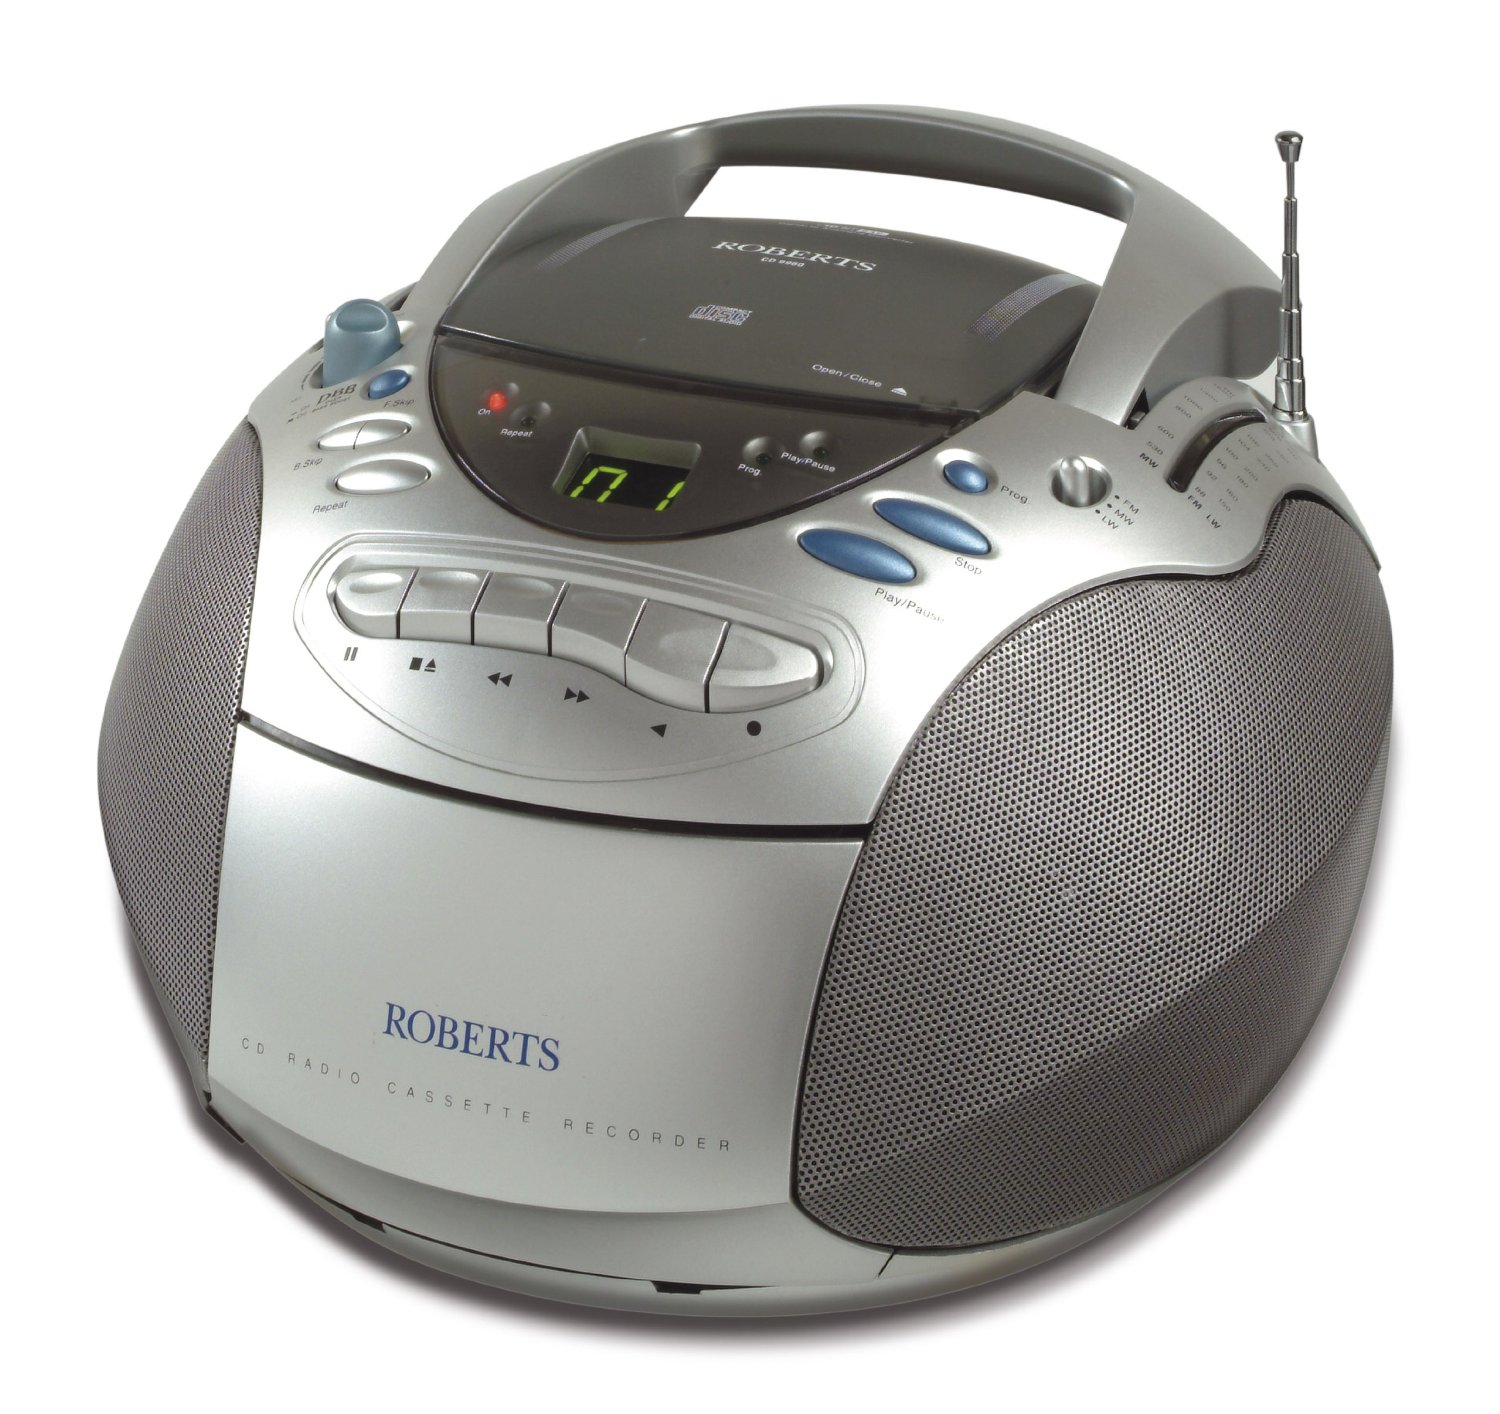 Panasonic SC HC27 SC HC27  PACT AUDIO SYSTEM furthermore N559778W furthermore SUPERSONIC PORTABLE CD PLAYER DUAL DOUBLE CASSETTE RECORDER 271210191132 in addition F 144201315 Auc2009995752350 moreover Search. on panasonic personal cd player